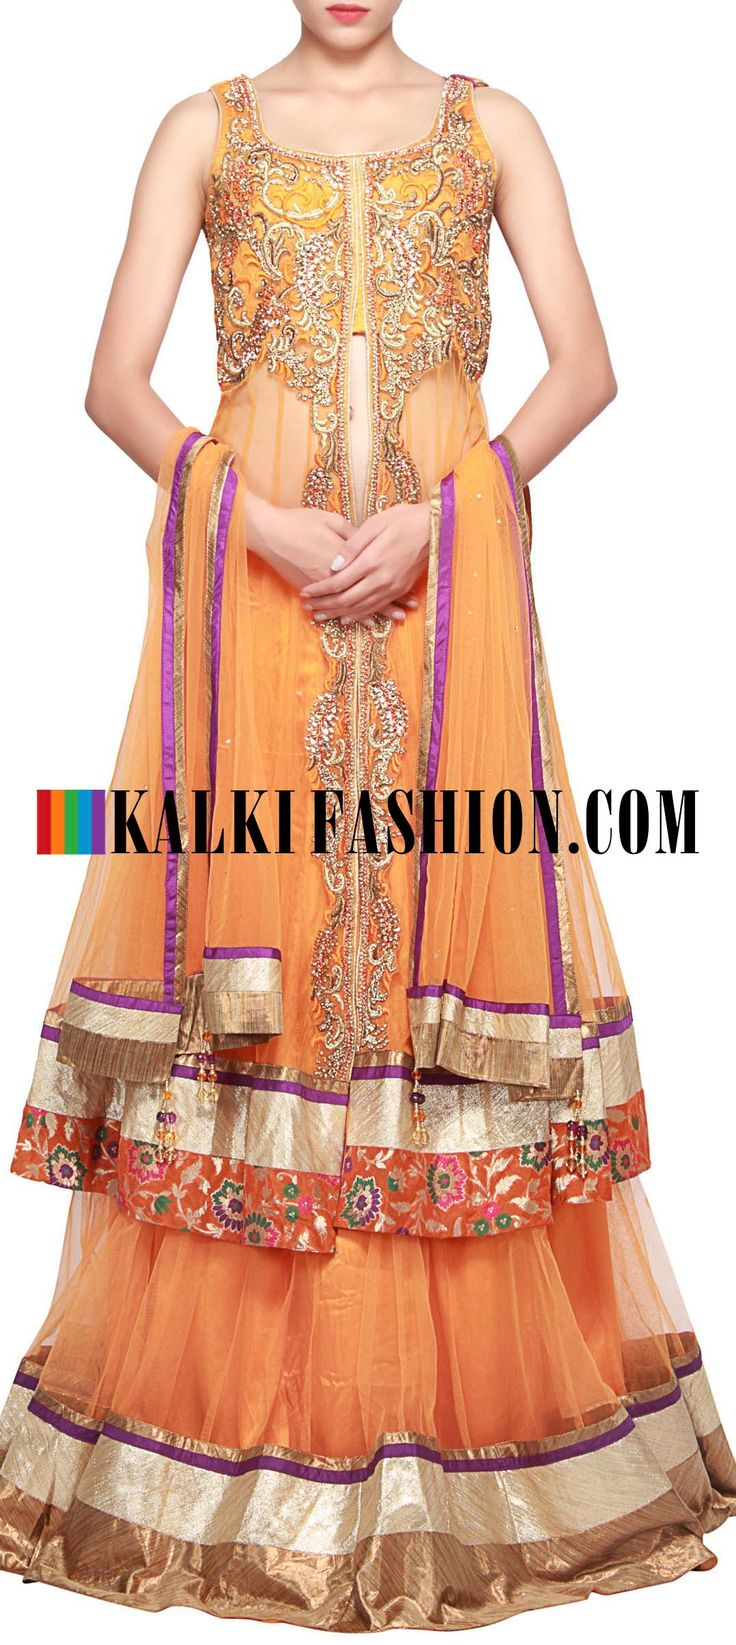 Buy Online from the link below. We ship worldwide (Free Shipping over US$100) Get this beautiful lehenga with: http://www.kalkifashion.com/orange-long-jacket-lehenga-enhanced-in-resham-and-zari-embroidery-only-on-kalki.